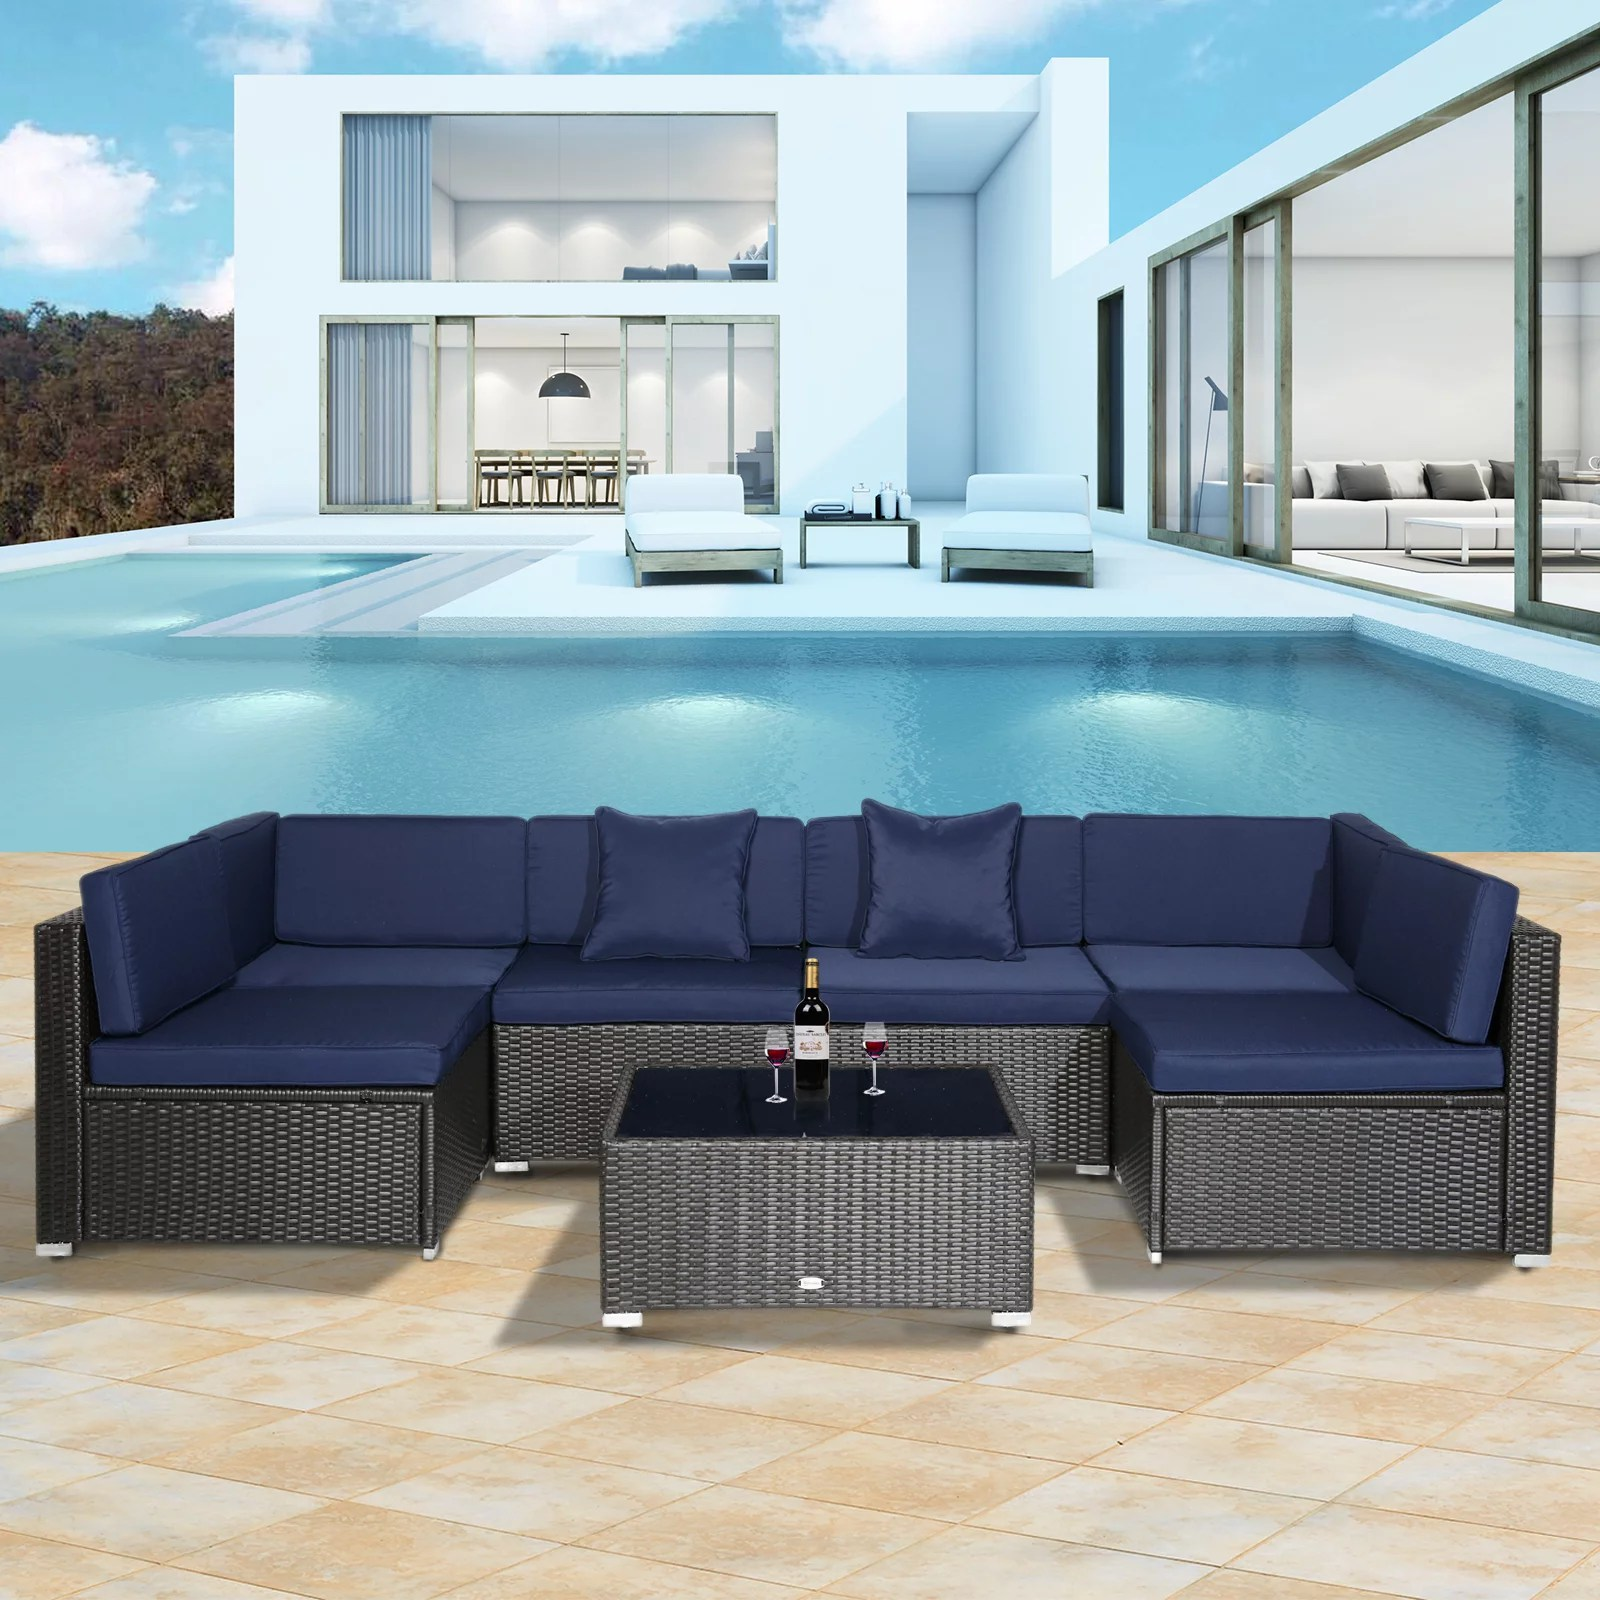 outsunny 7 piece patio wicker sofa set sectional rattan outdoor furniture with blue cushions